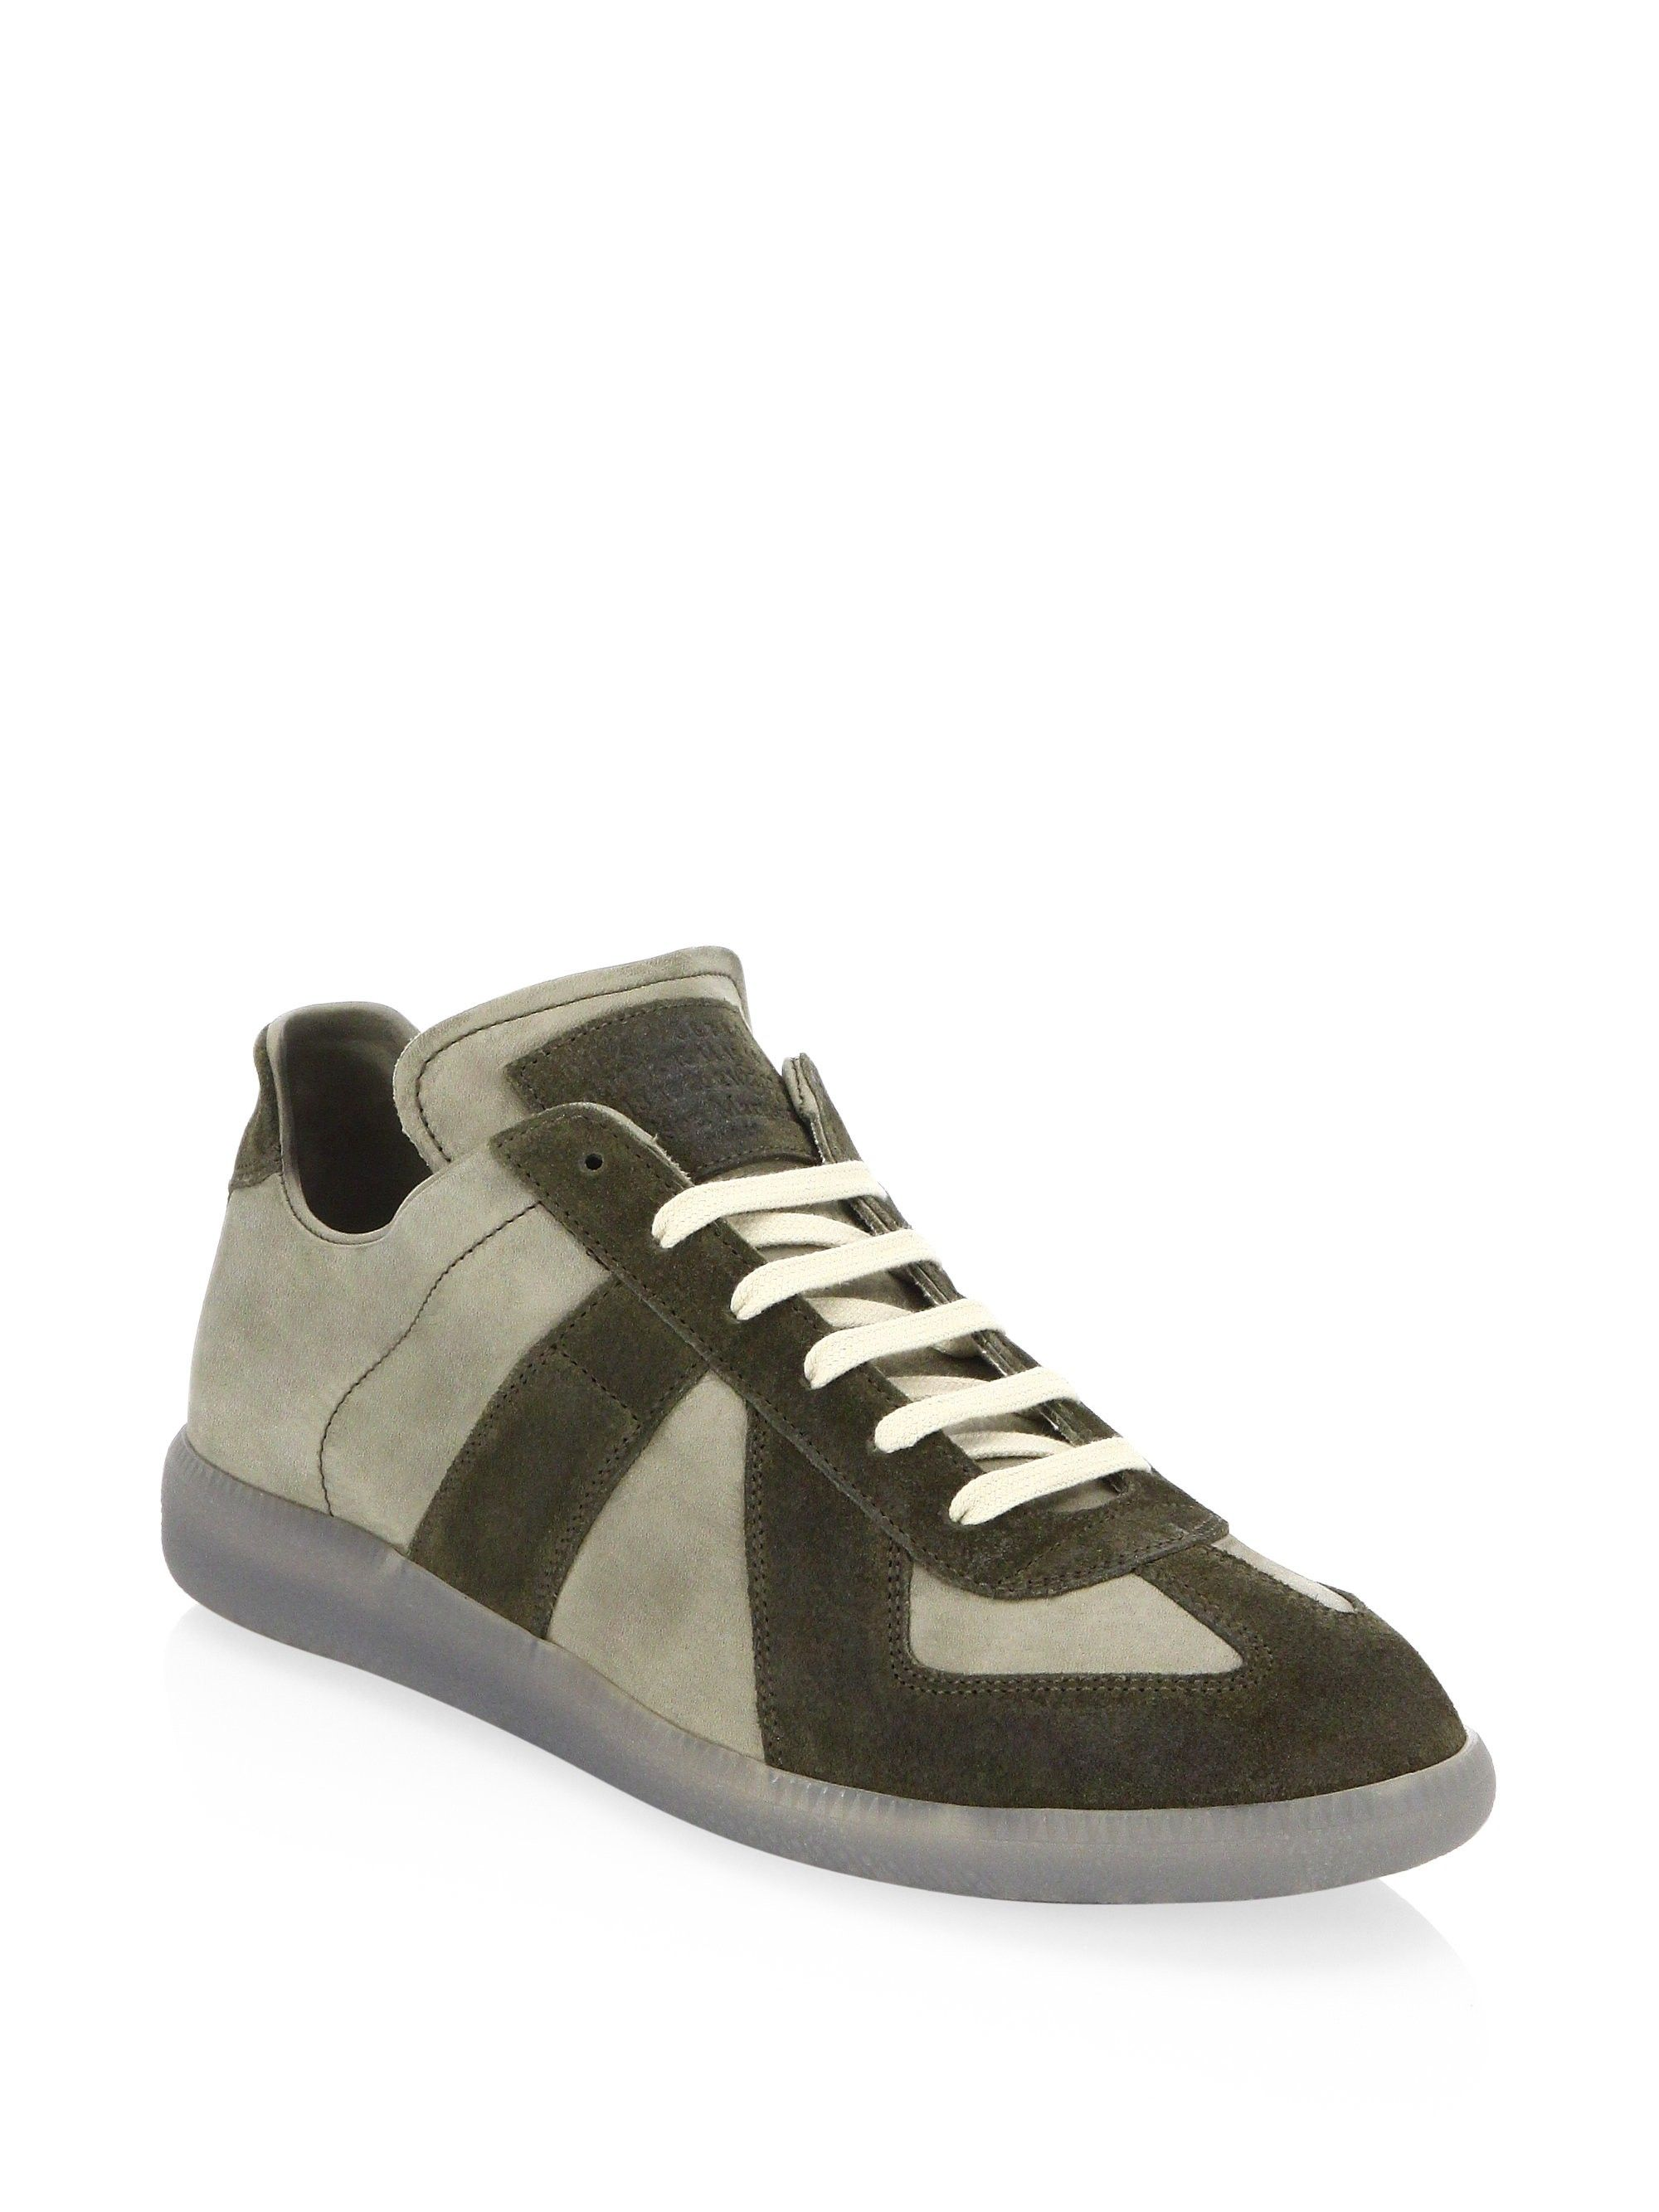 Maison Margiela Replica Low Top Sneakers Olive Green 42 (9